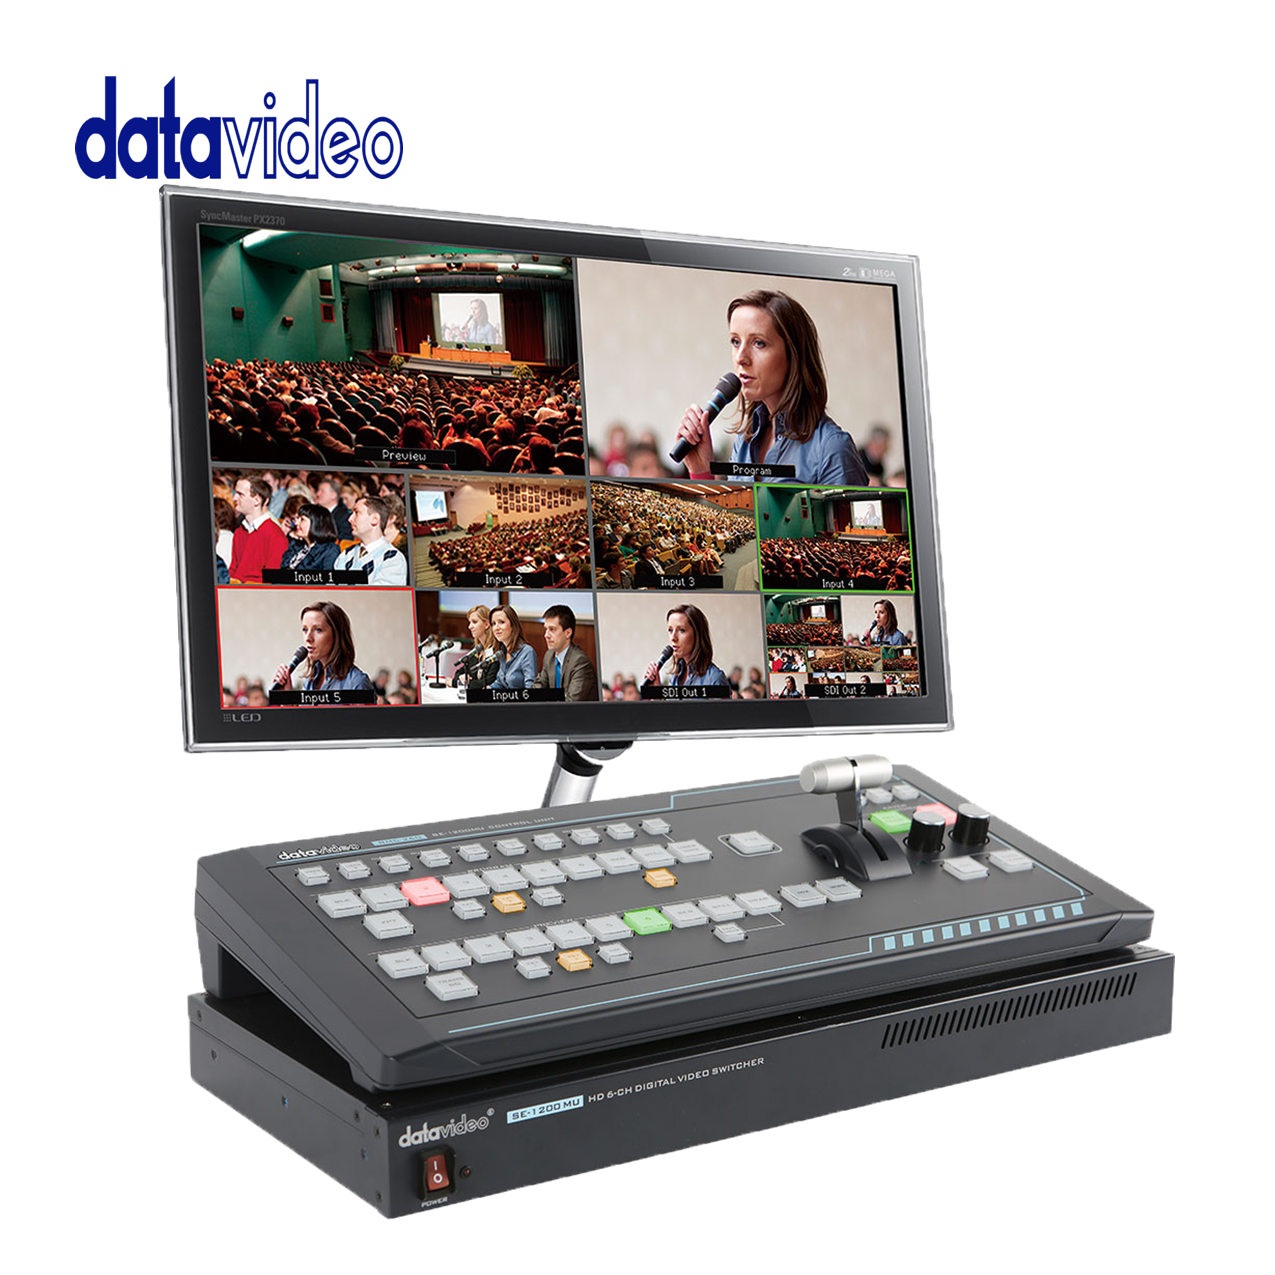 Datavideo SEB-1200 The Shortest Learning Curve Of Any 6-Input Switcher Pro Video Data Video